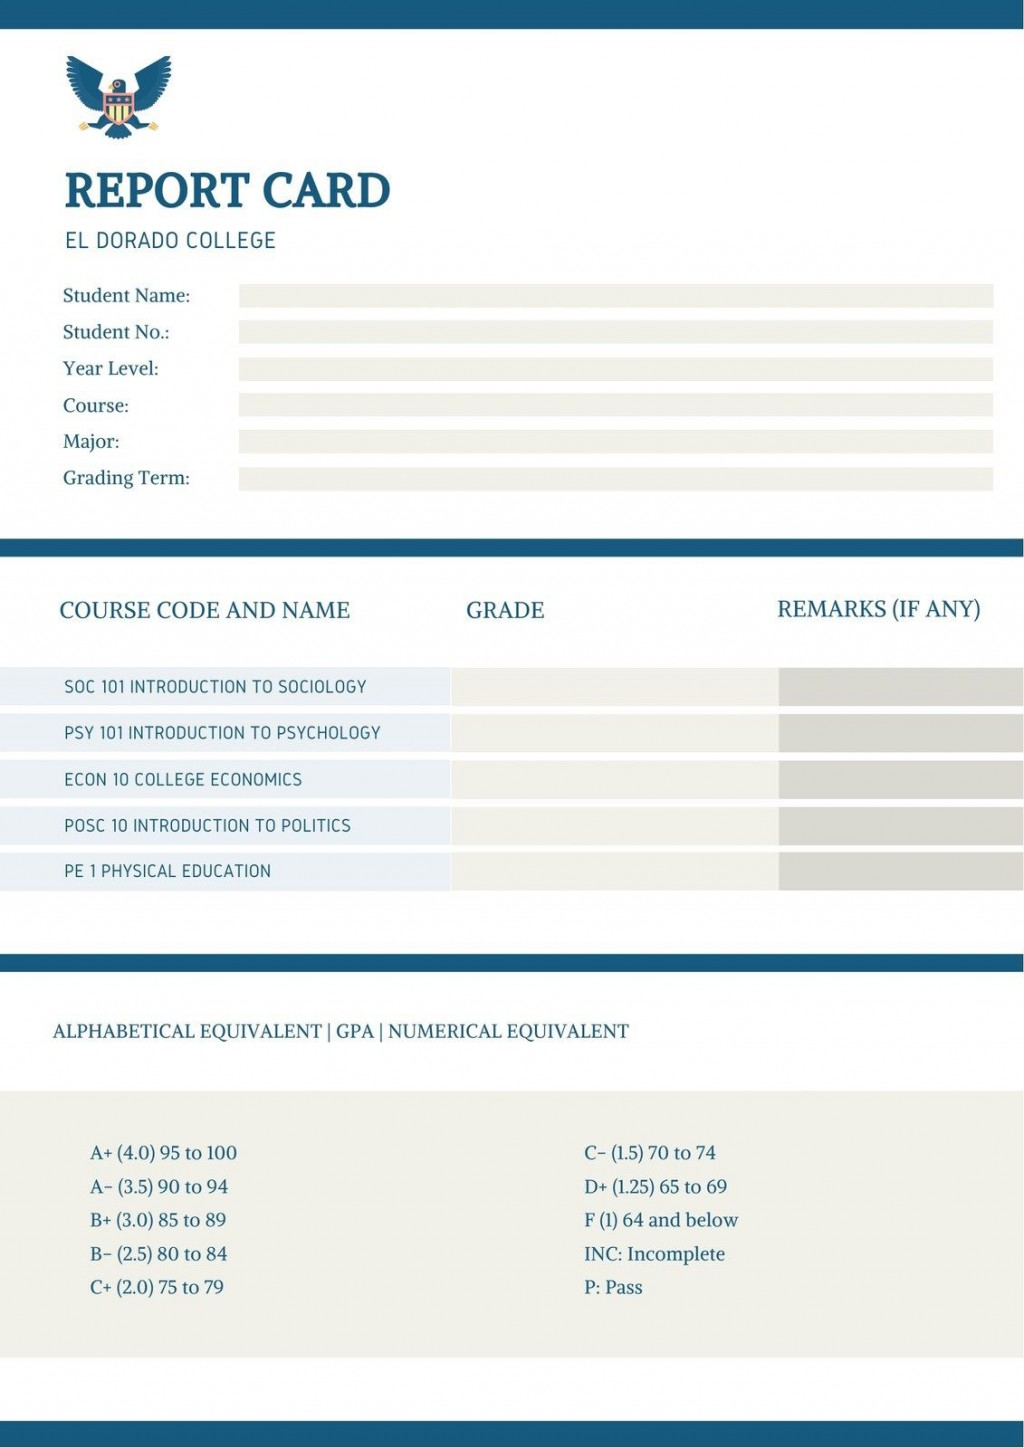 005 Exceptional College Report Card Template High Def  Free FakeLarge